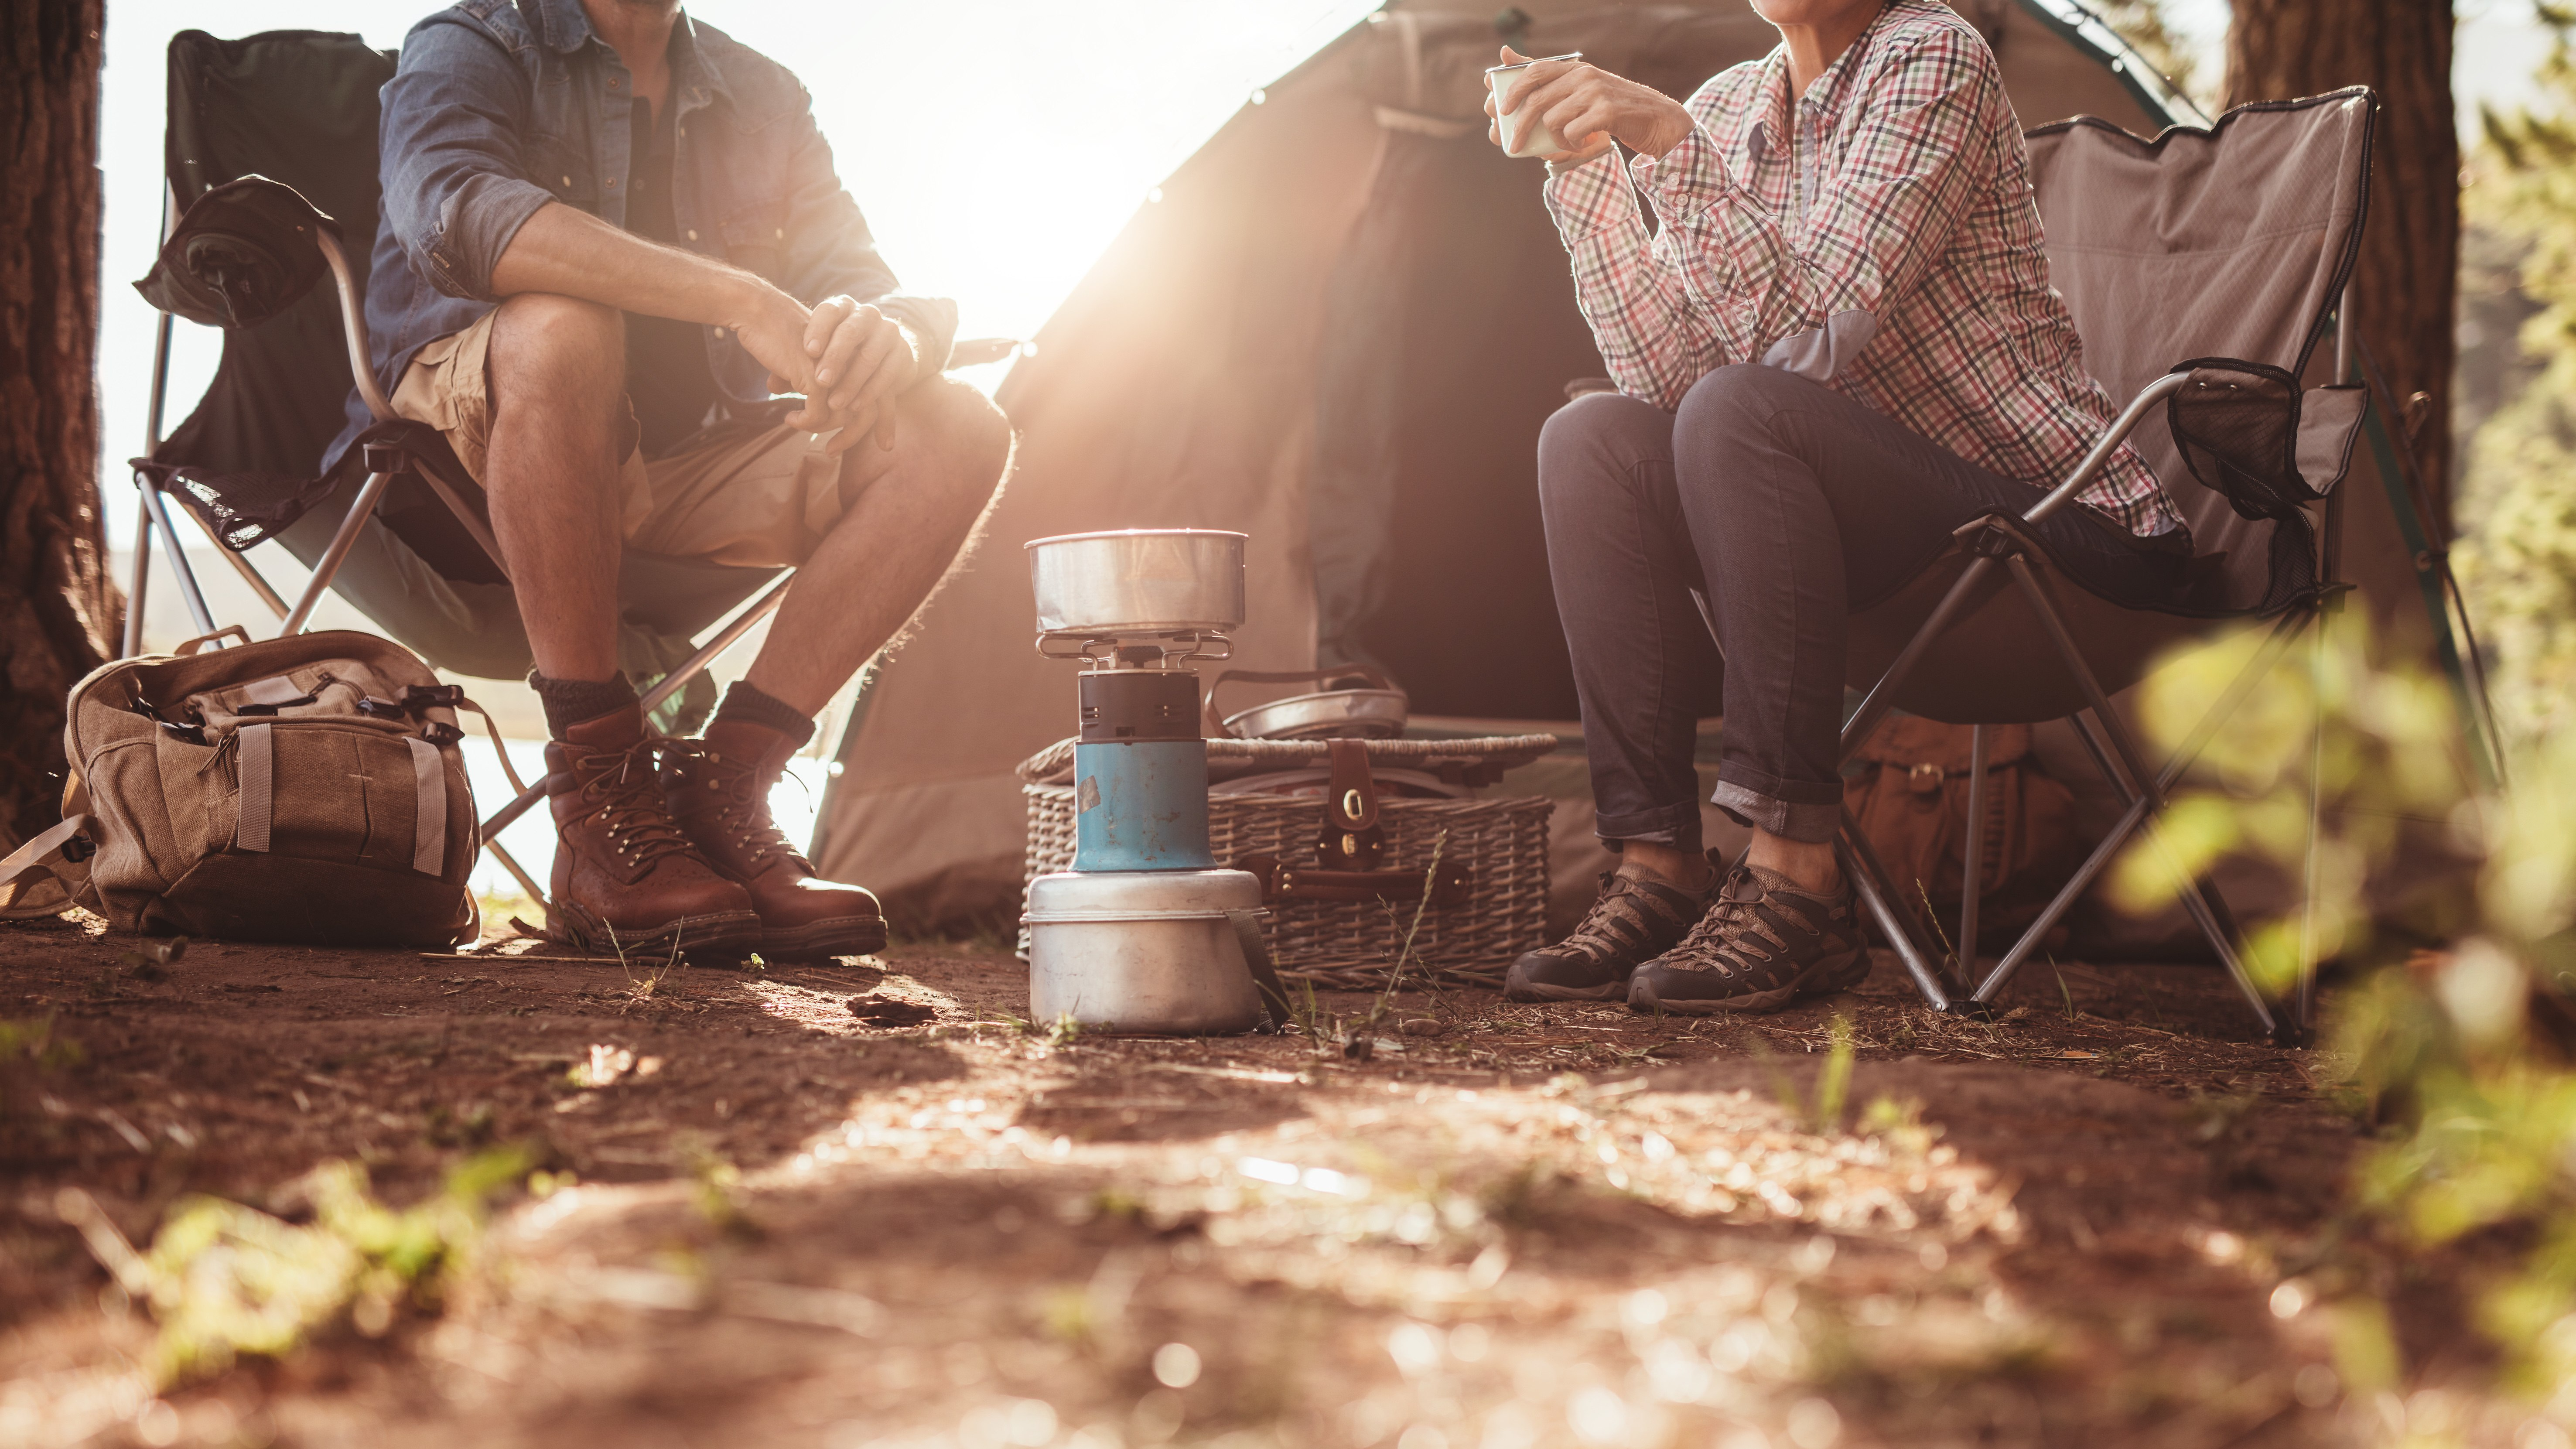 Eating food while camping